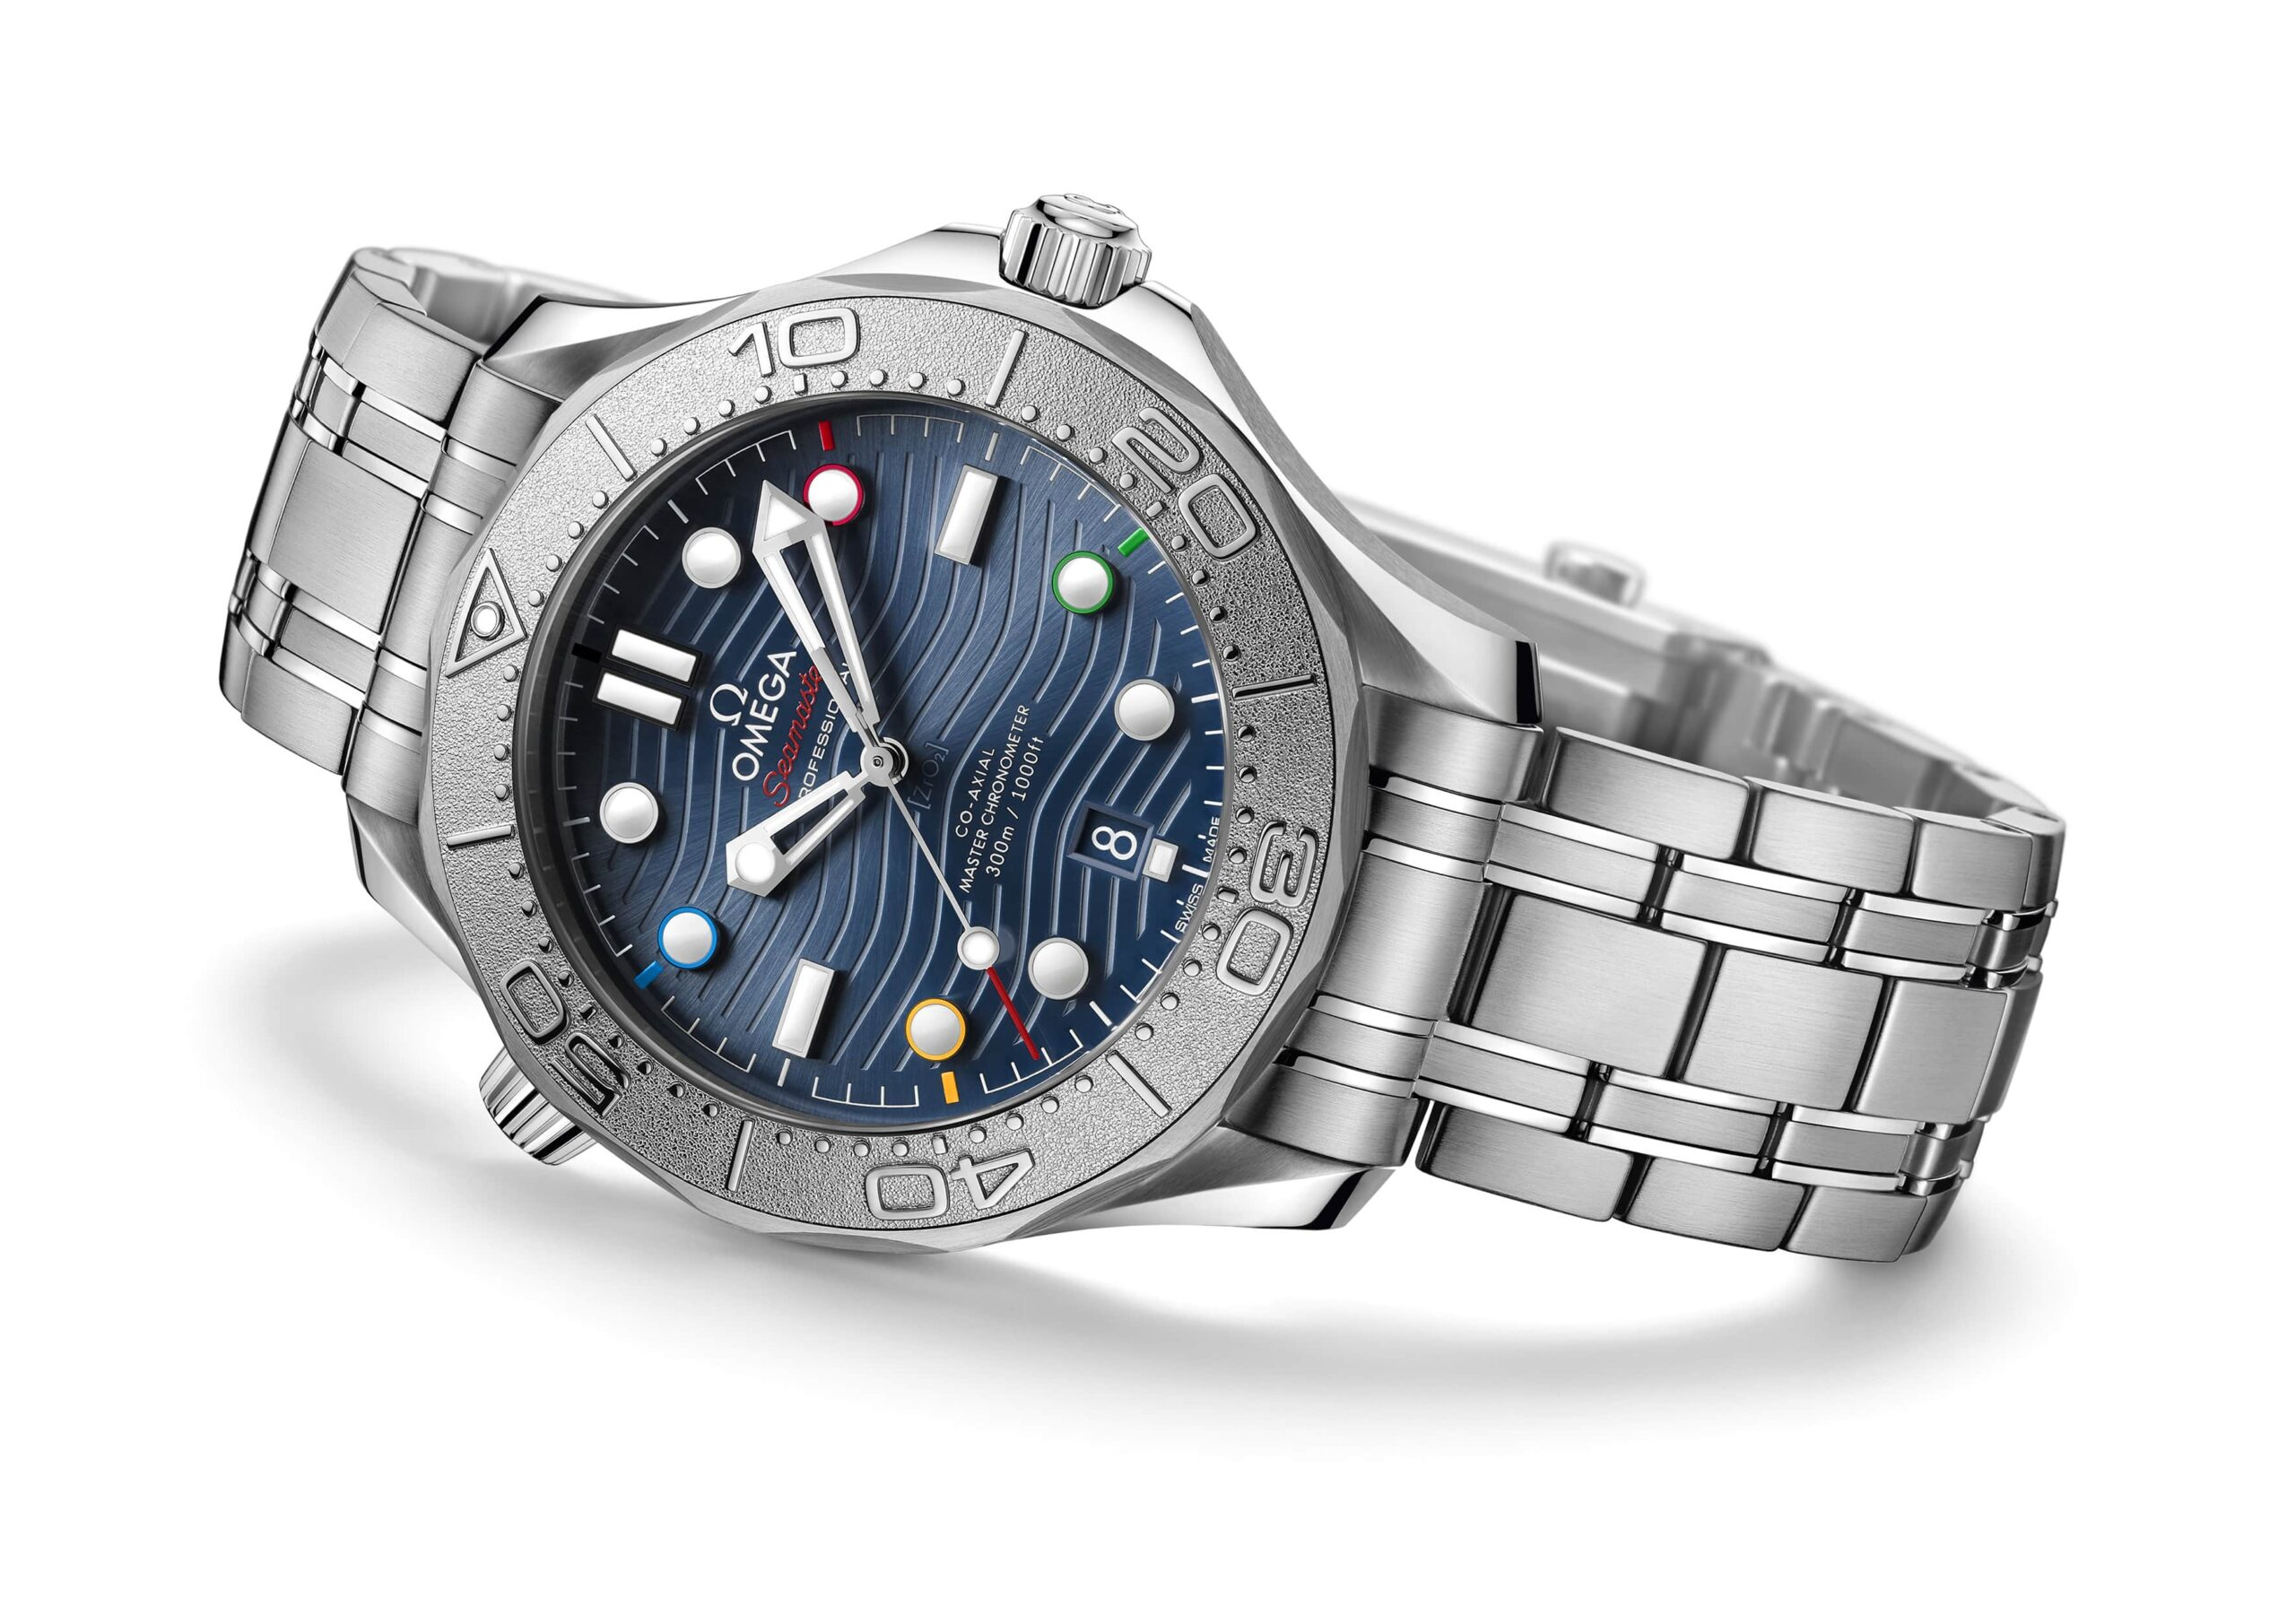 """Omega Seamaster Diver 300M """"Beijing 2022"""" Special Edition ref. 522.30.42.20.03.001"""